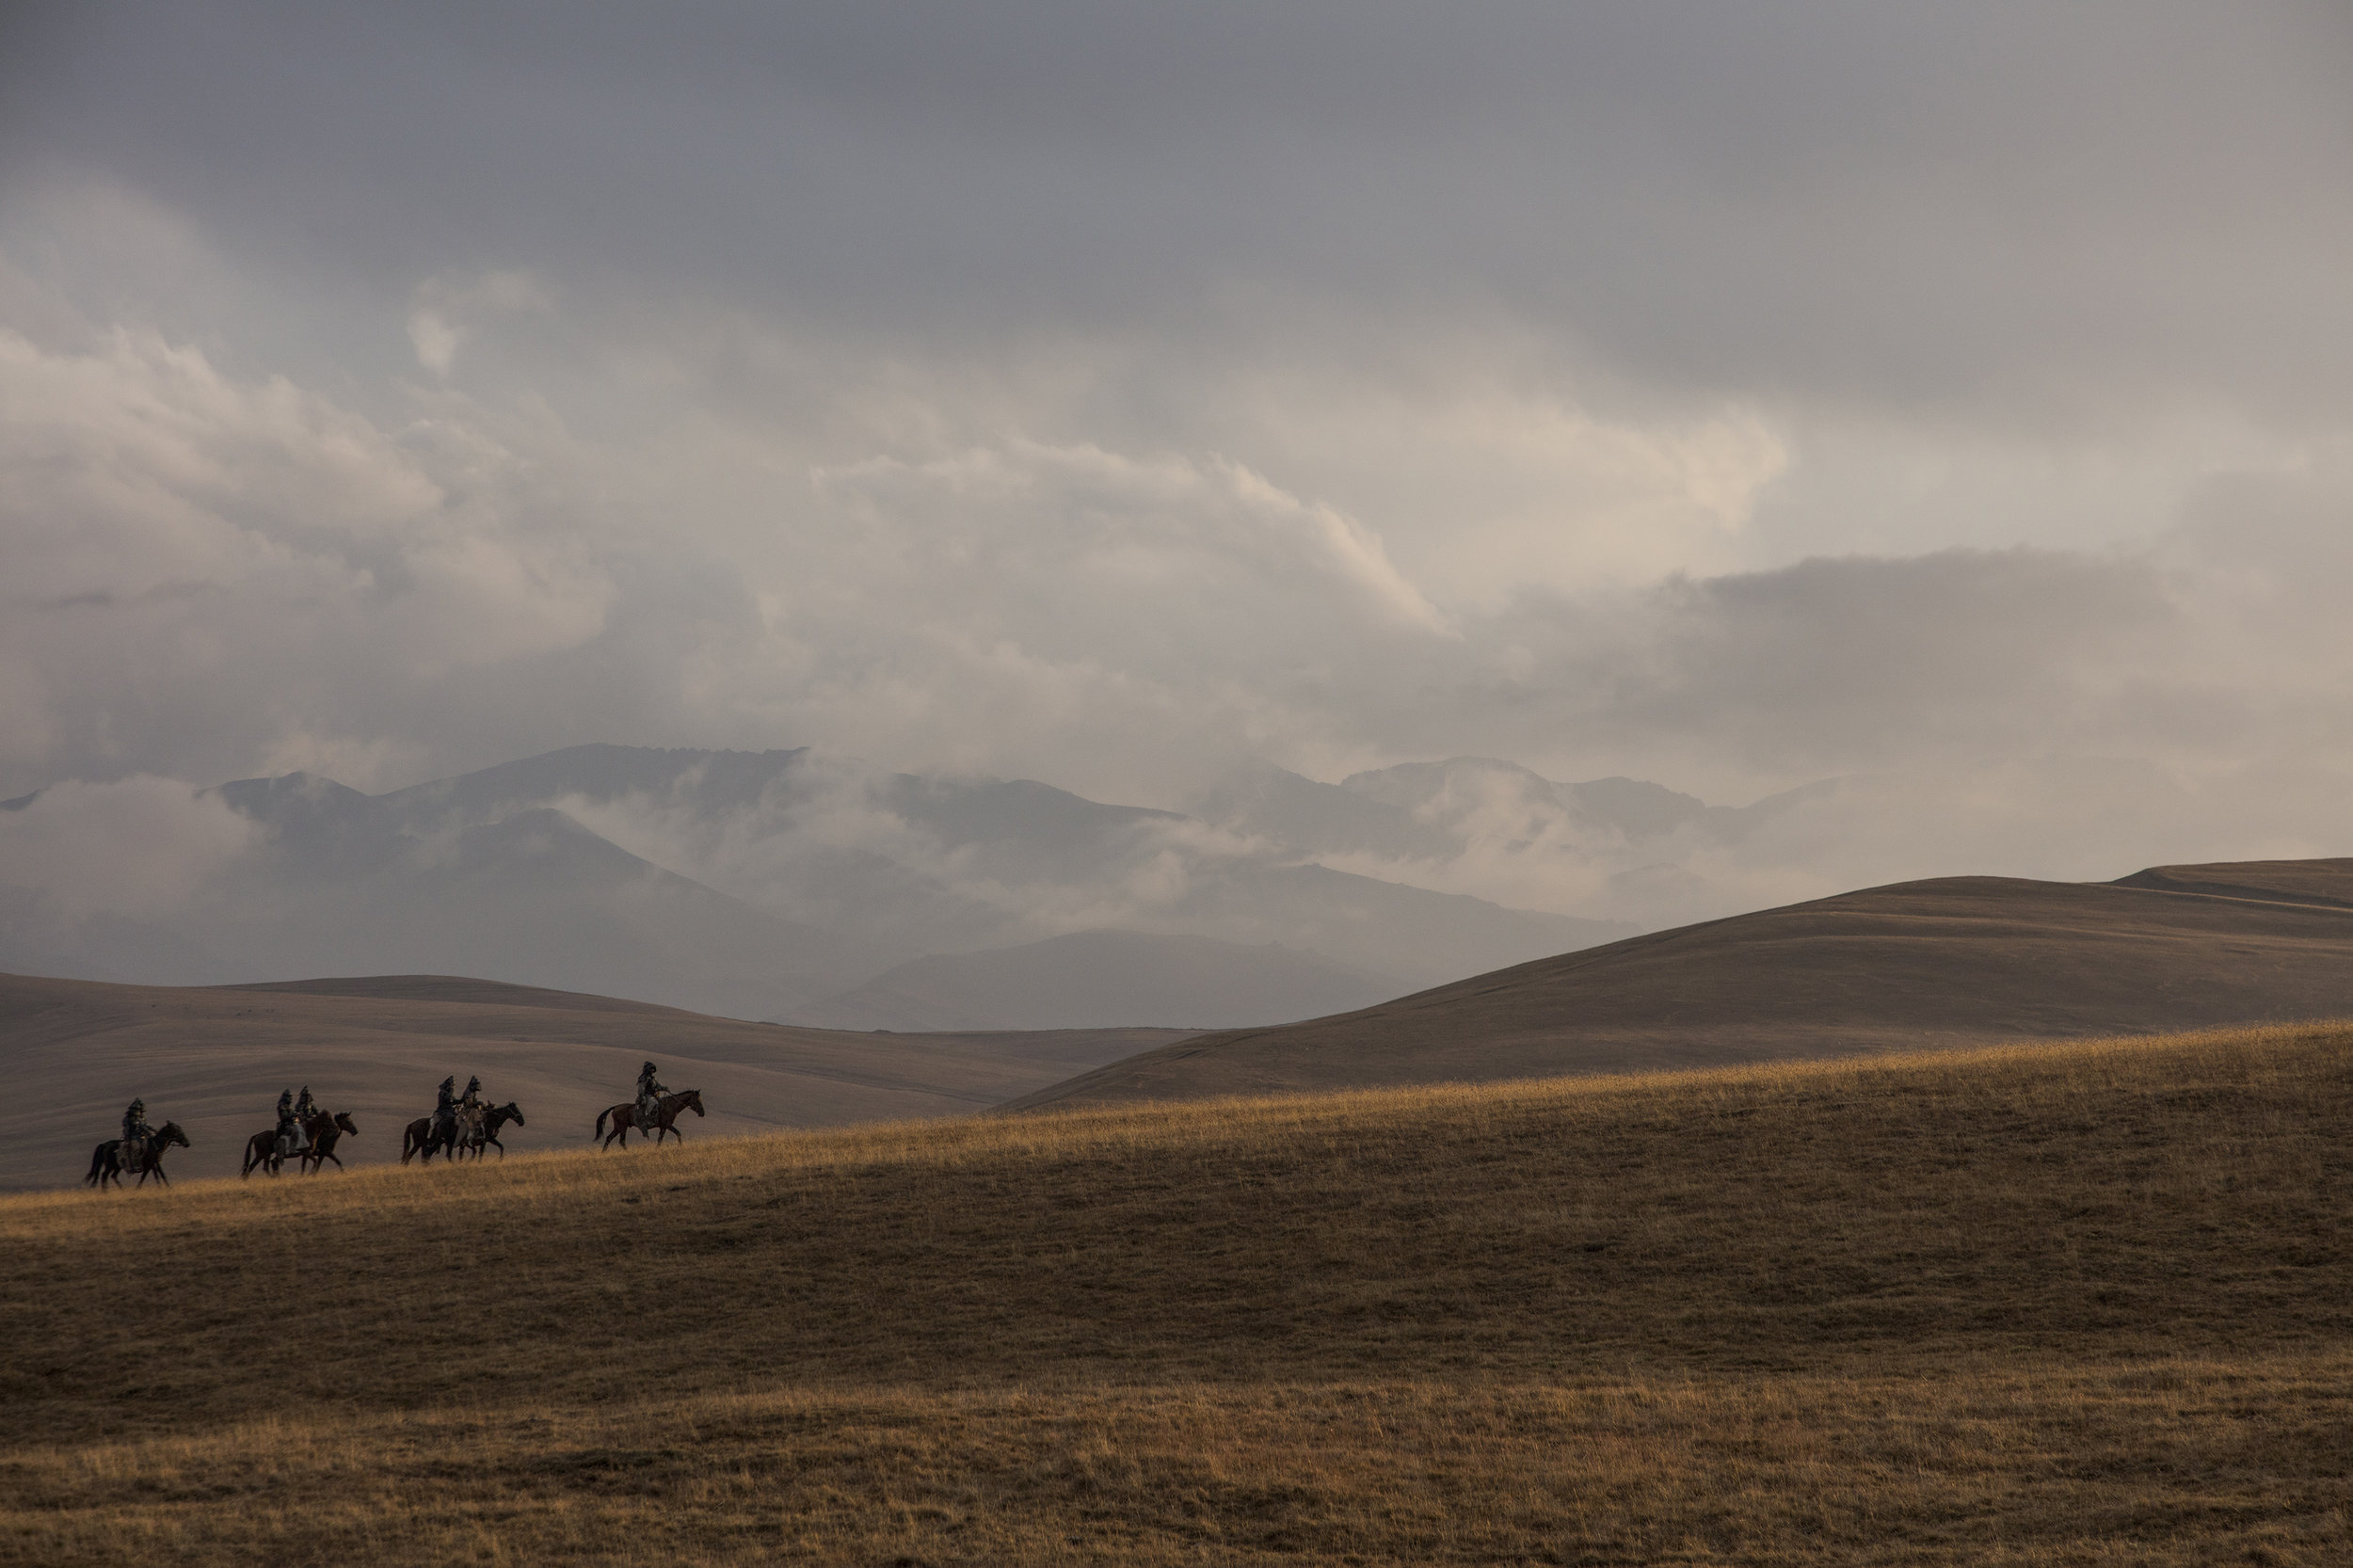 Yamnaya riders on the horizon, Assy Plateau, Tien Shan Mountains, Kazakhstan.jpg